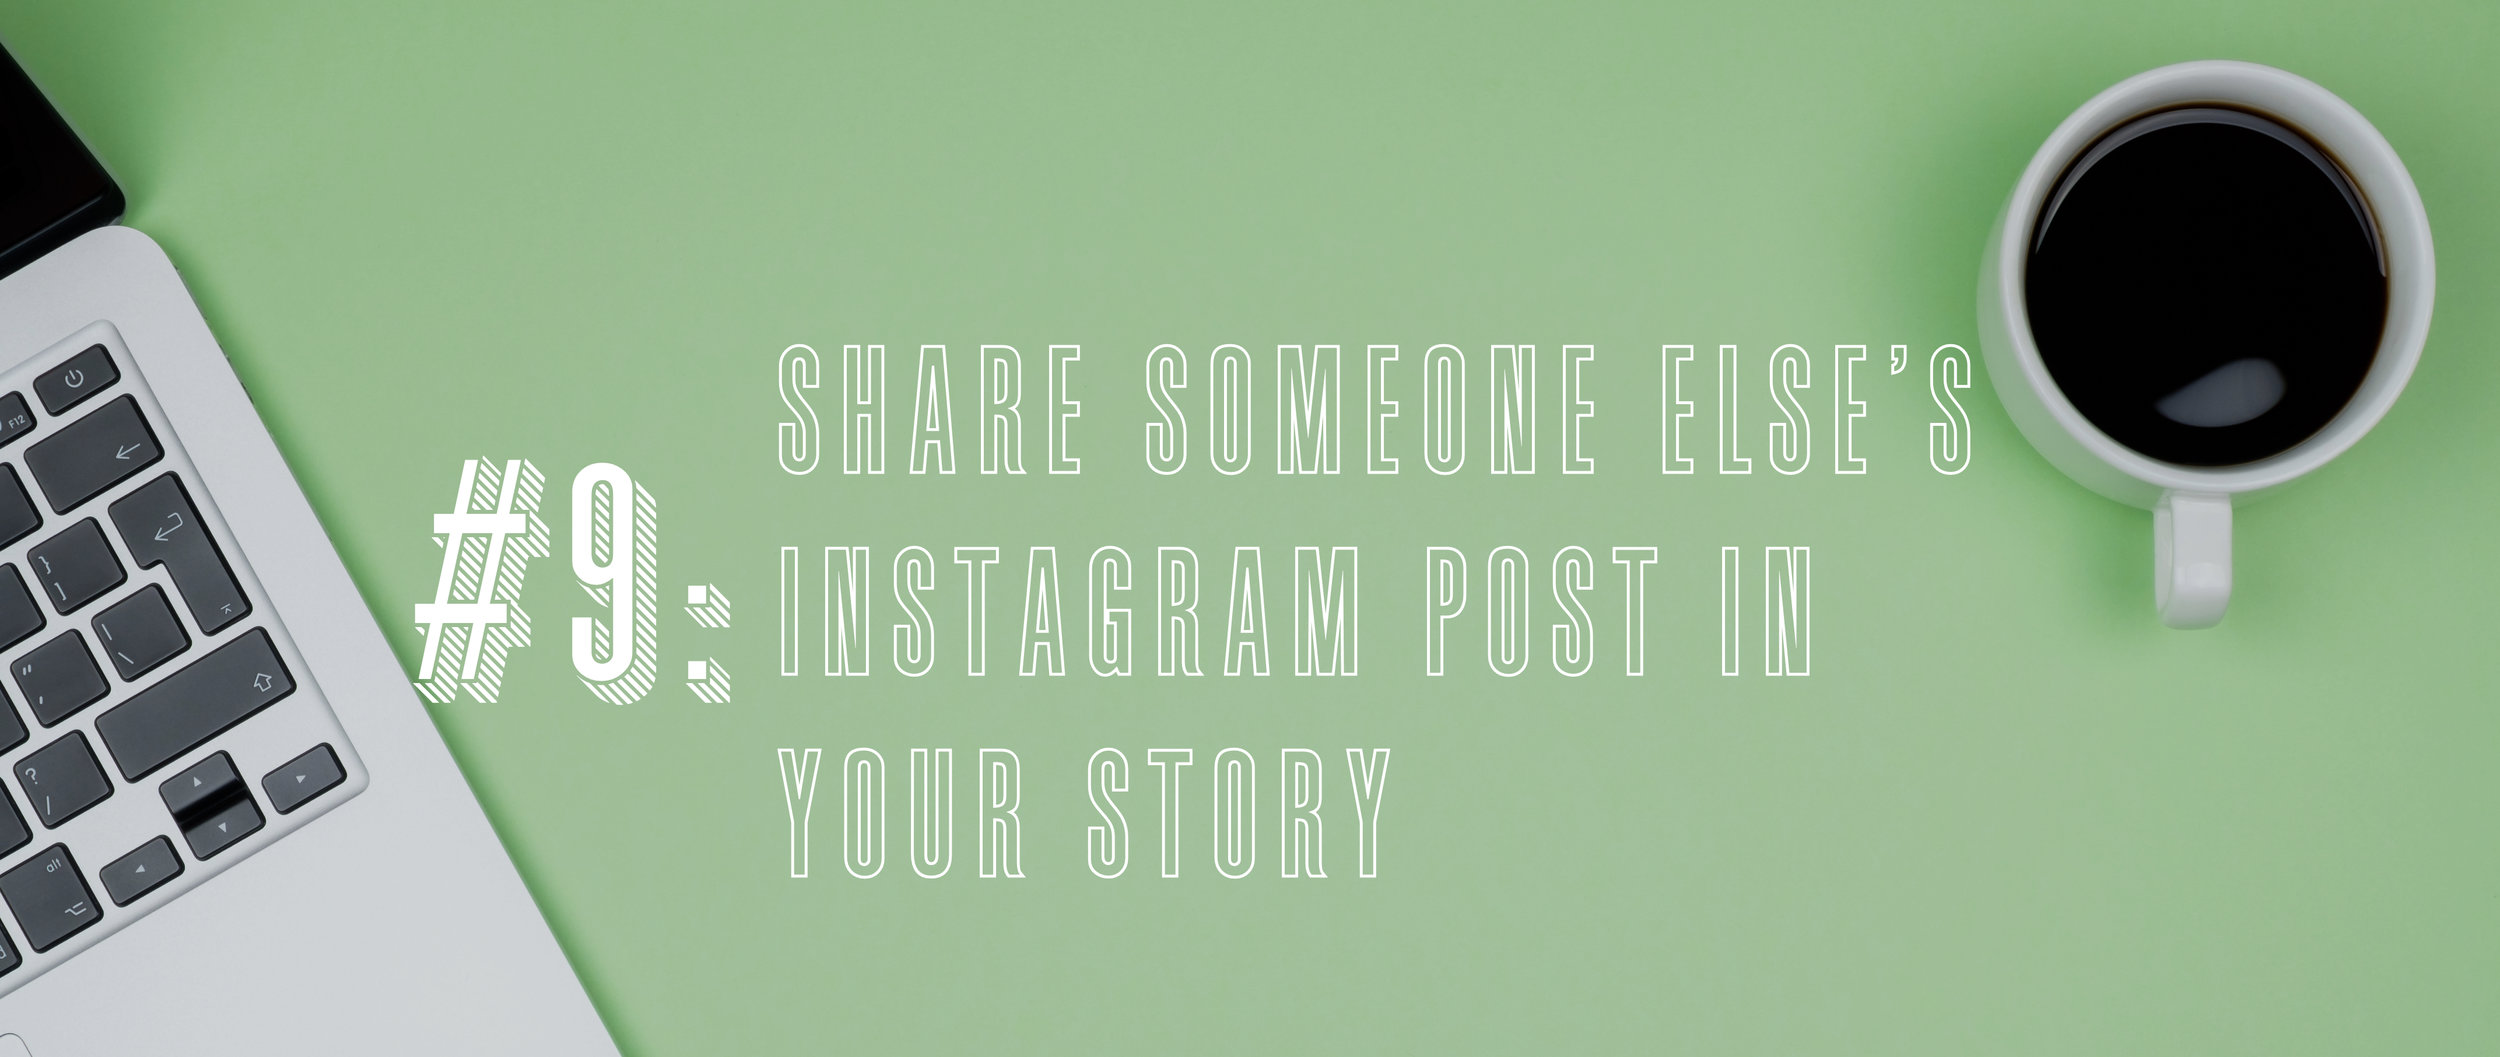 9 Share Someone Else's Instagram Post in Your Story.jpg